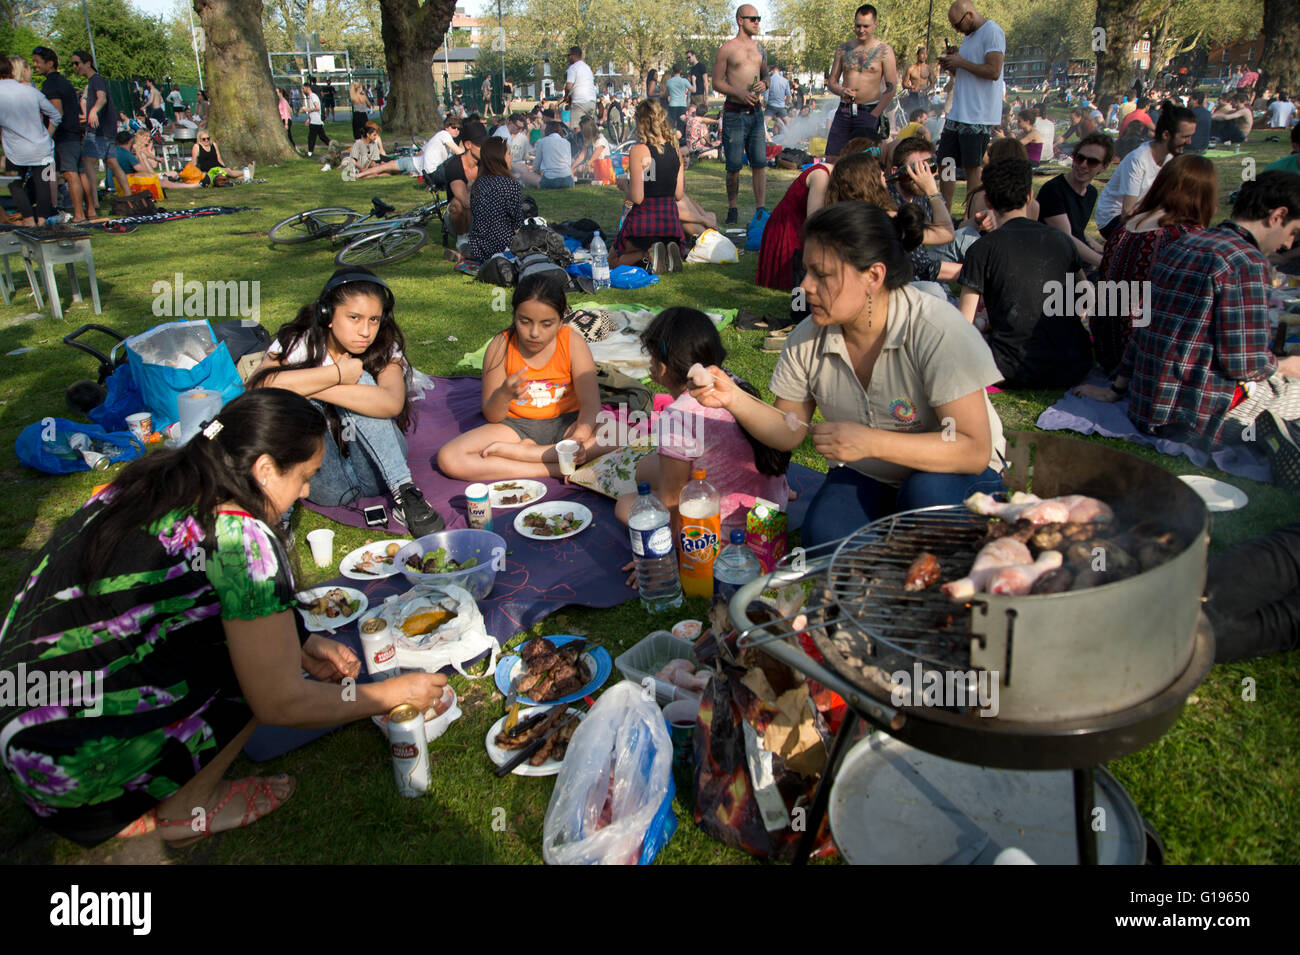 Hackney. London Fields park. Sunday afternoon in the sun. An Ecuadorian family have a barbecue . - Stock Image